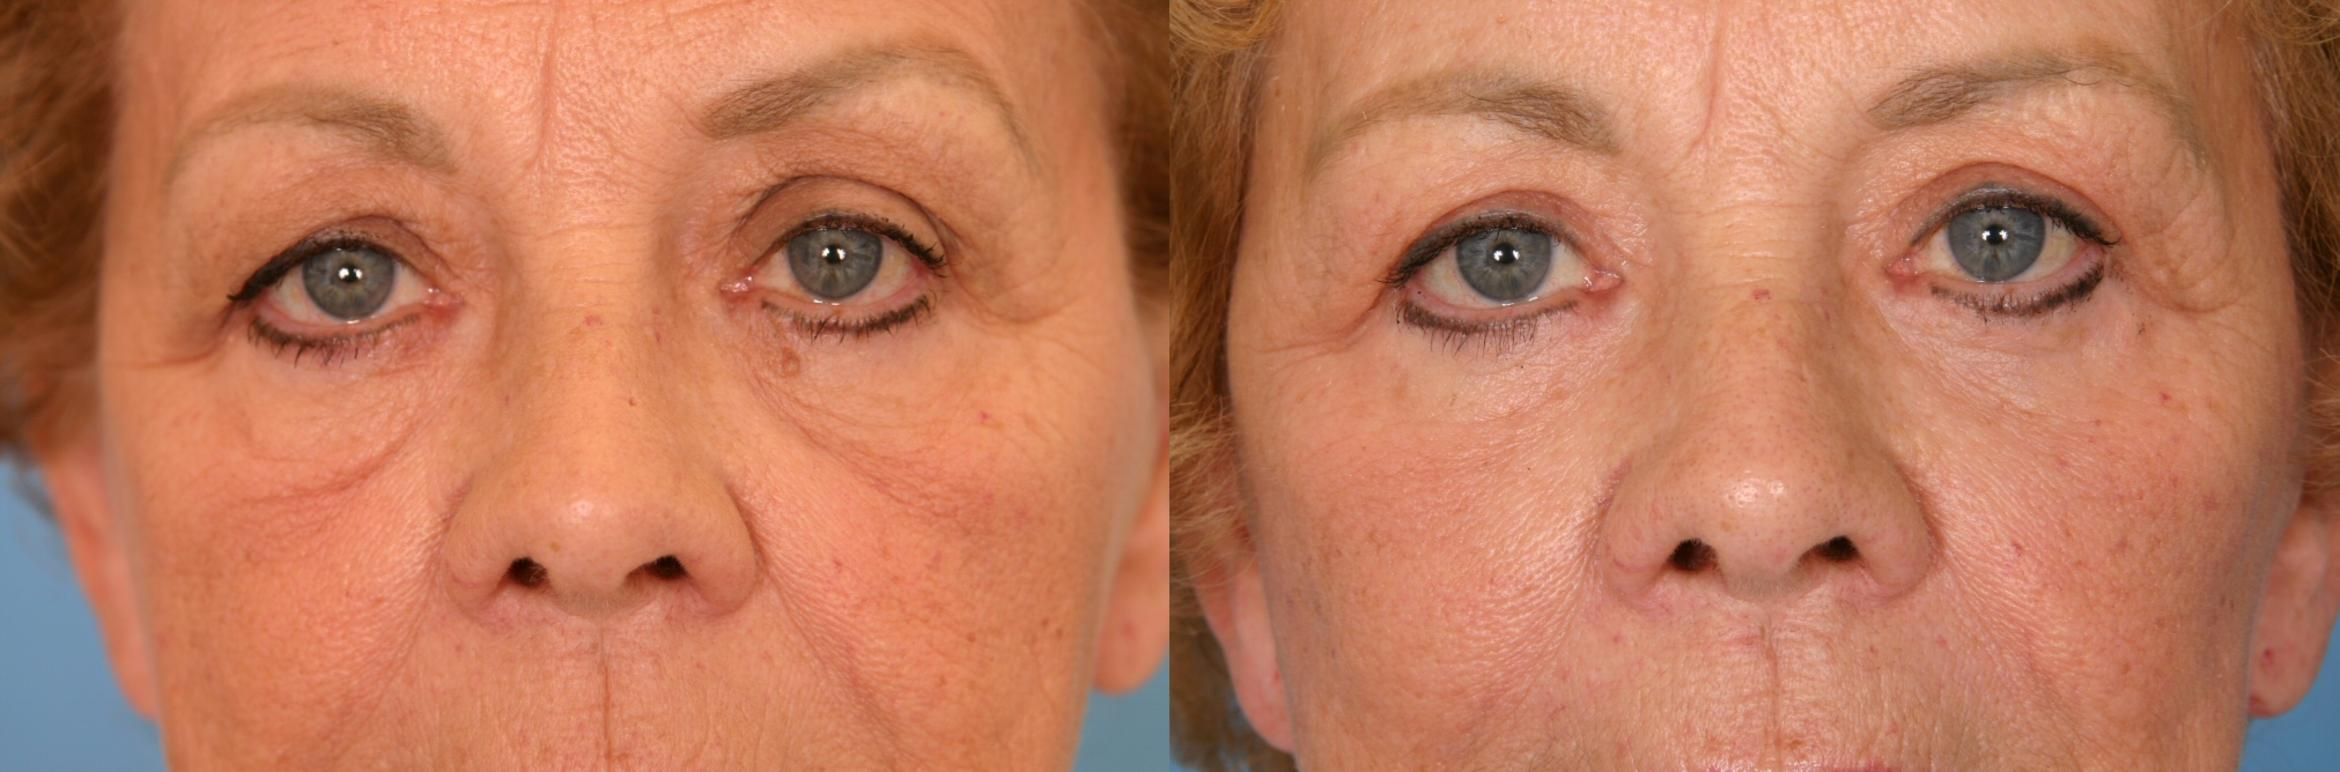 Eyelid Lift (Blepharoplasty) Case 52 Before & After View #1 | Naples, FL | Kent V. Hasen, M.D.